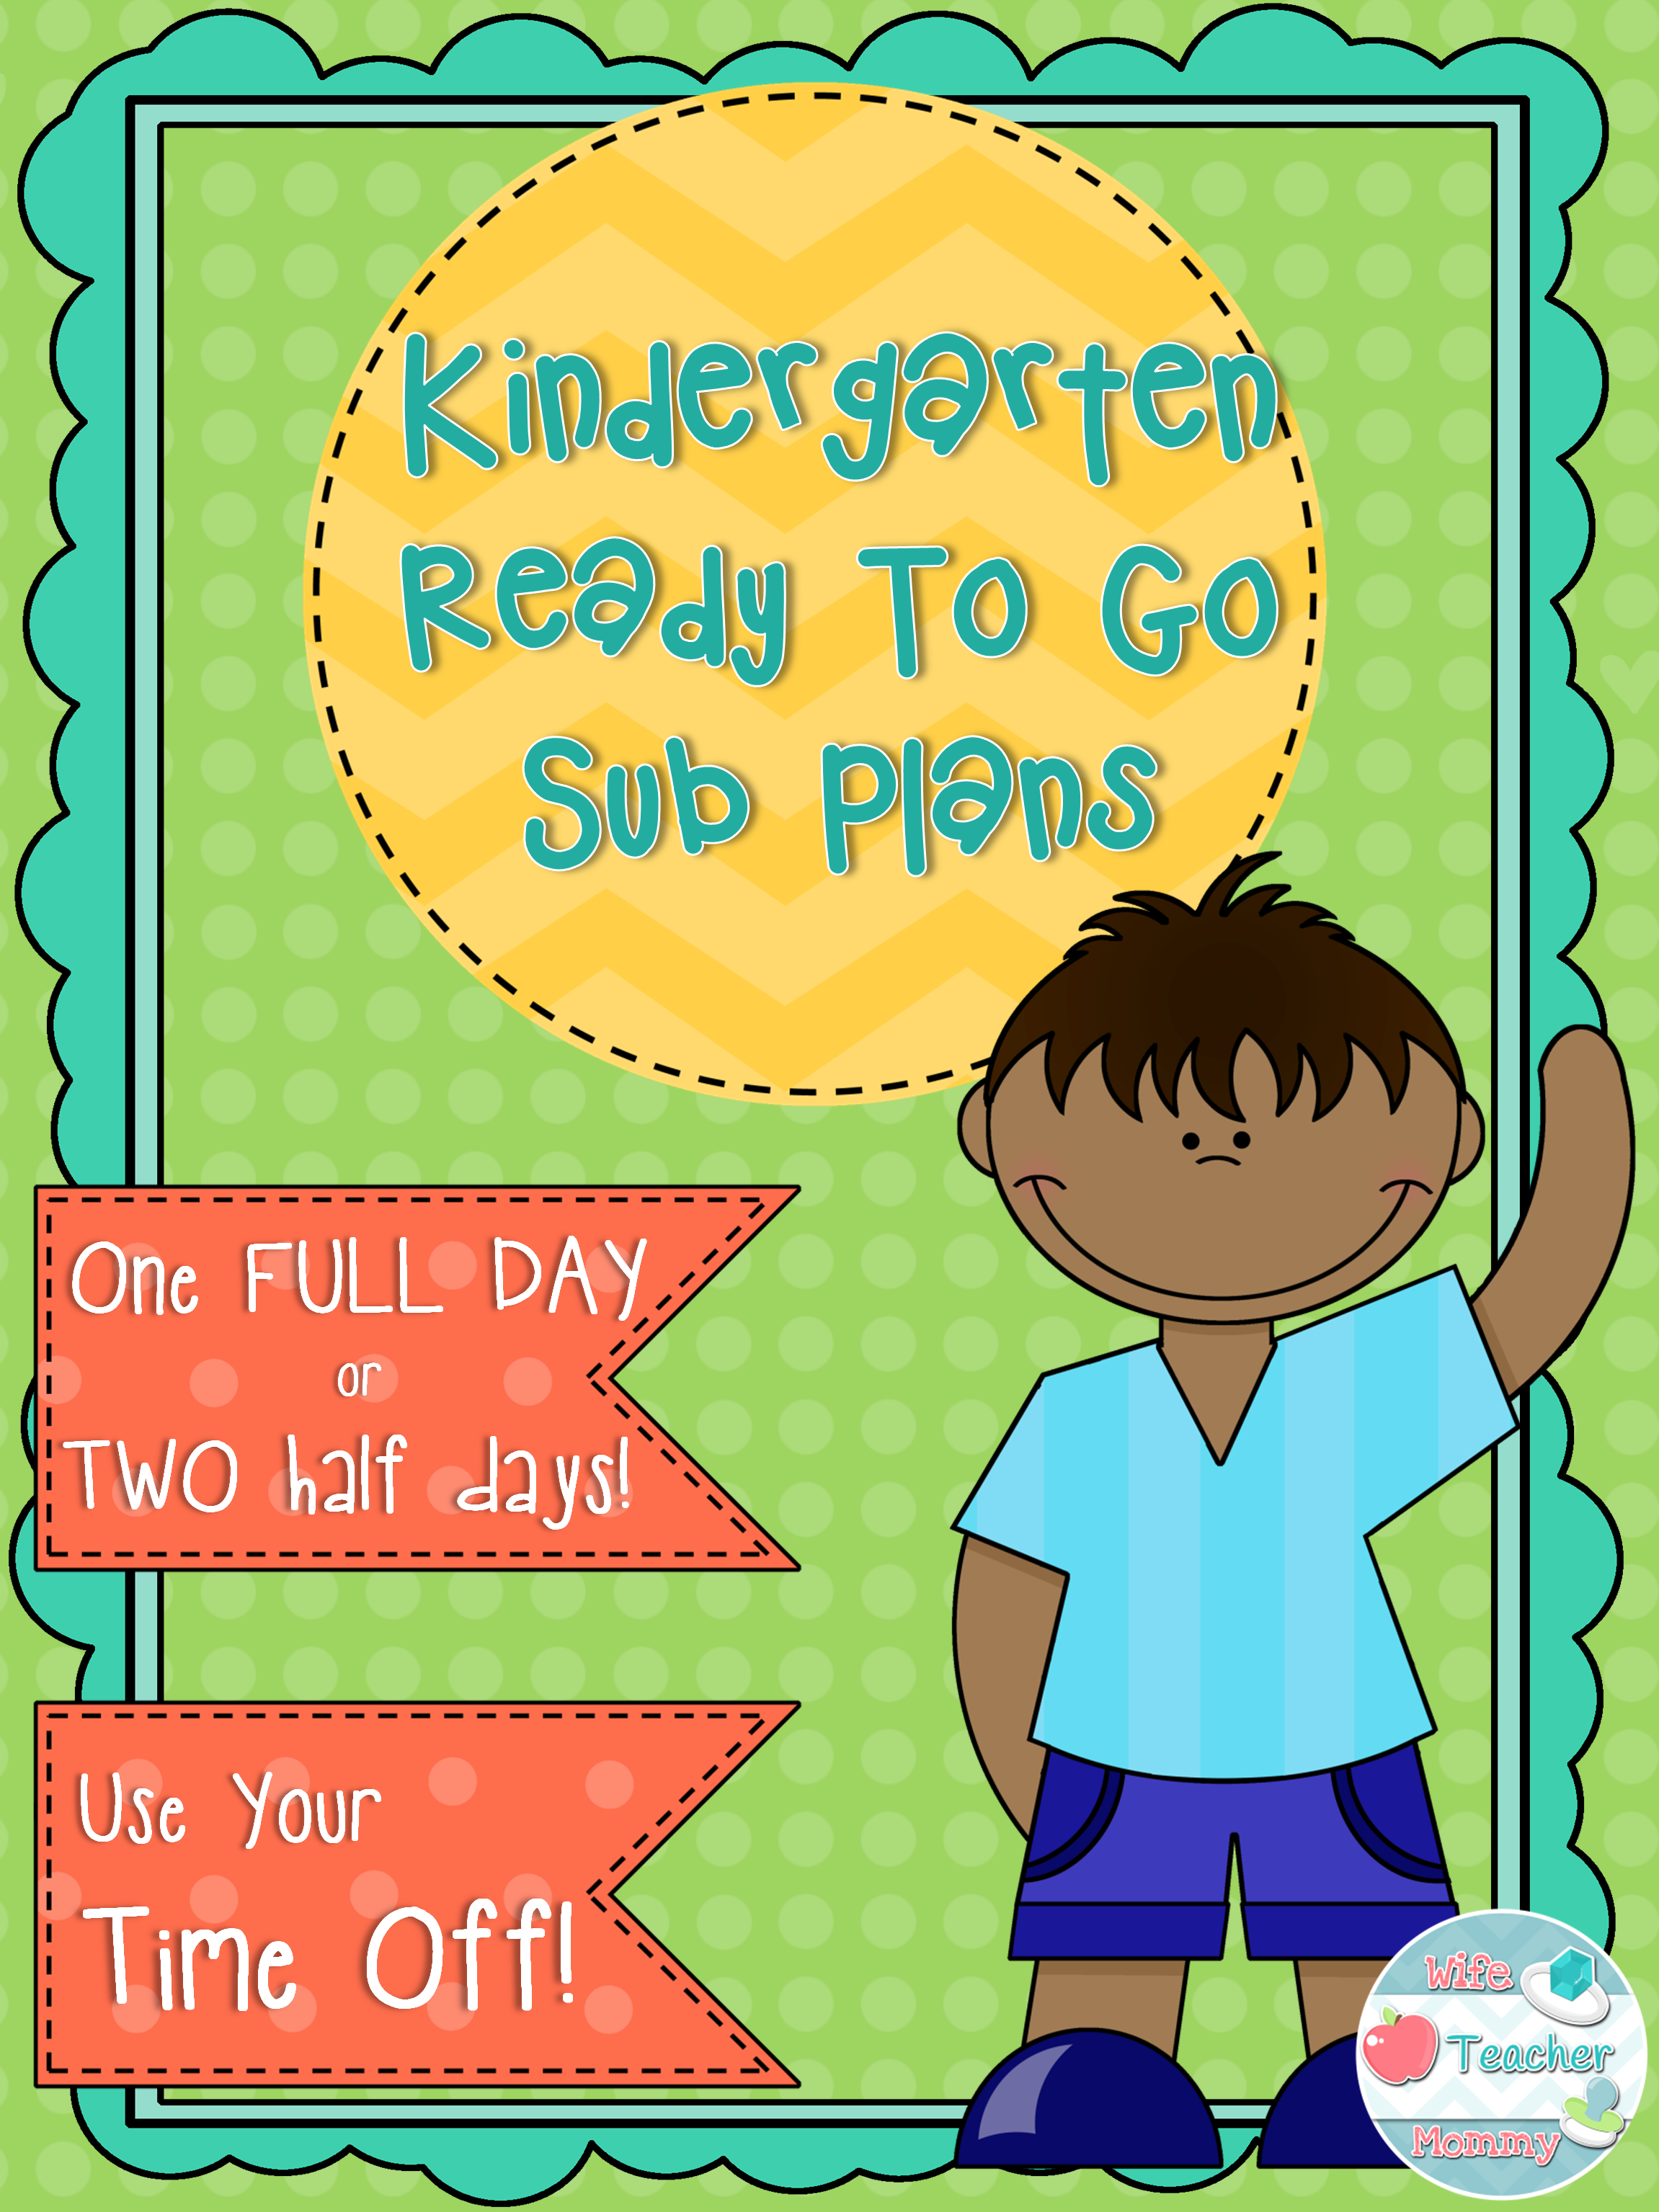 Kindergarten Sub Plans Ready To Go For Substitute No Prep One Full Day